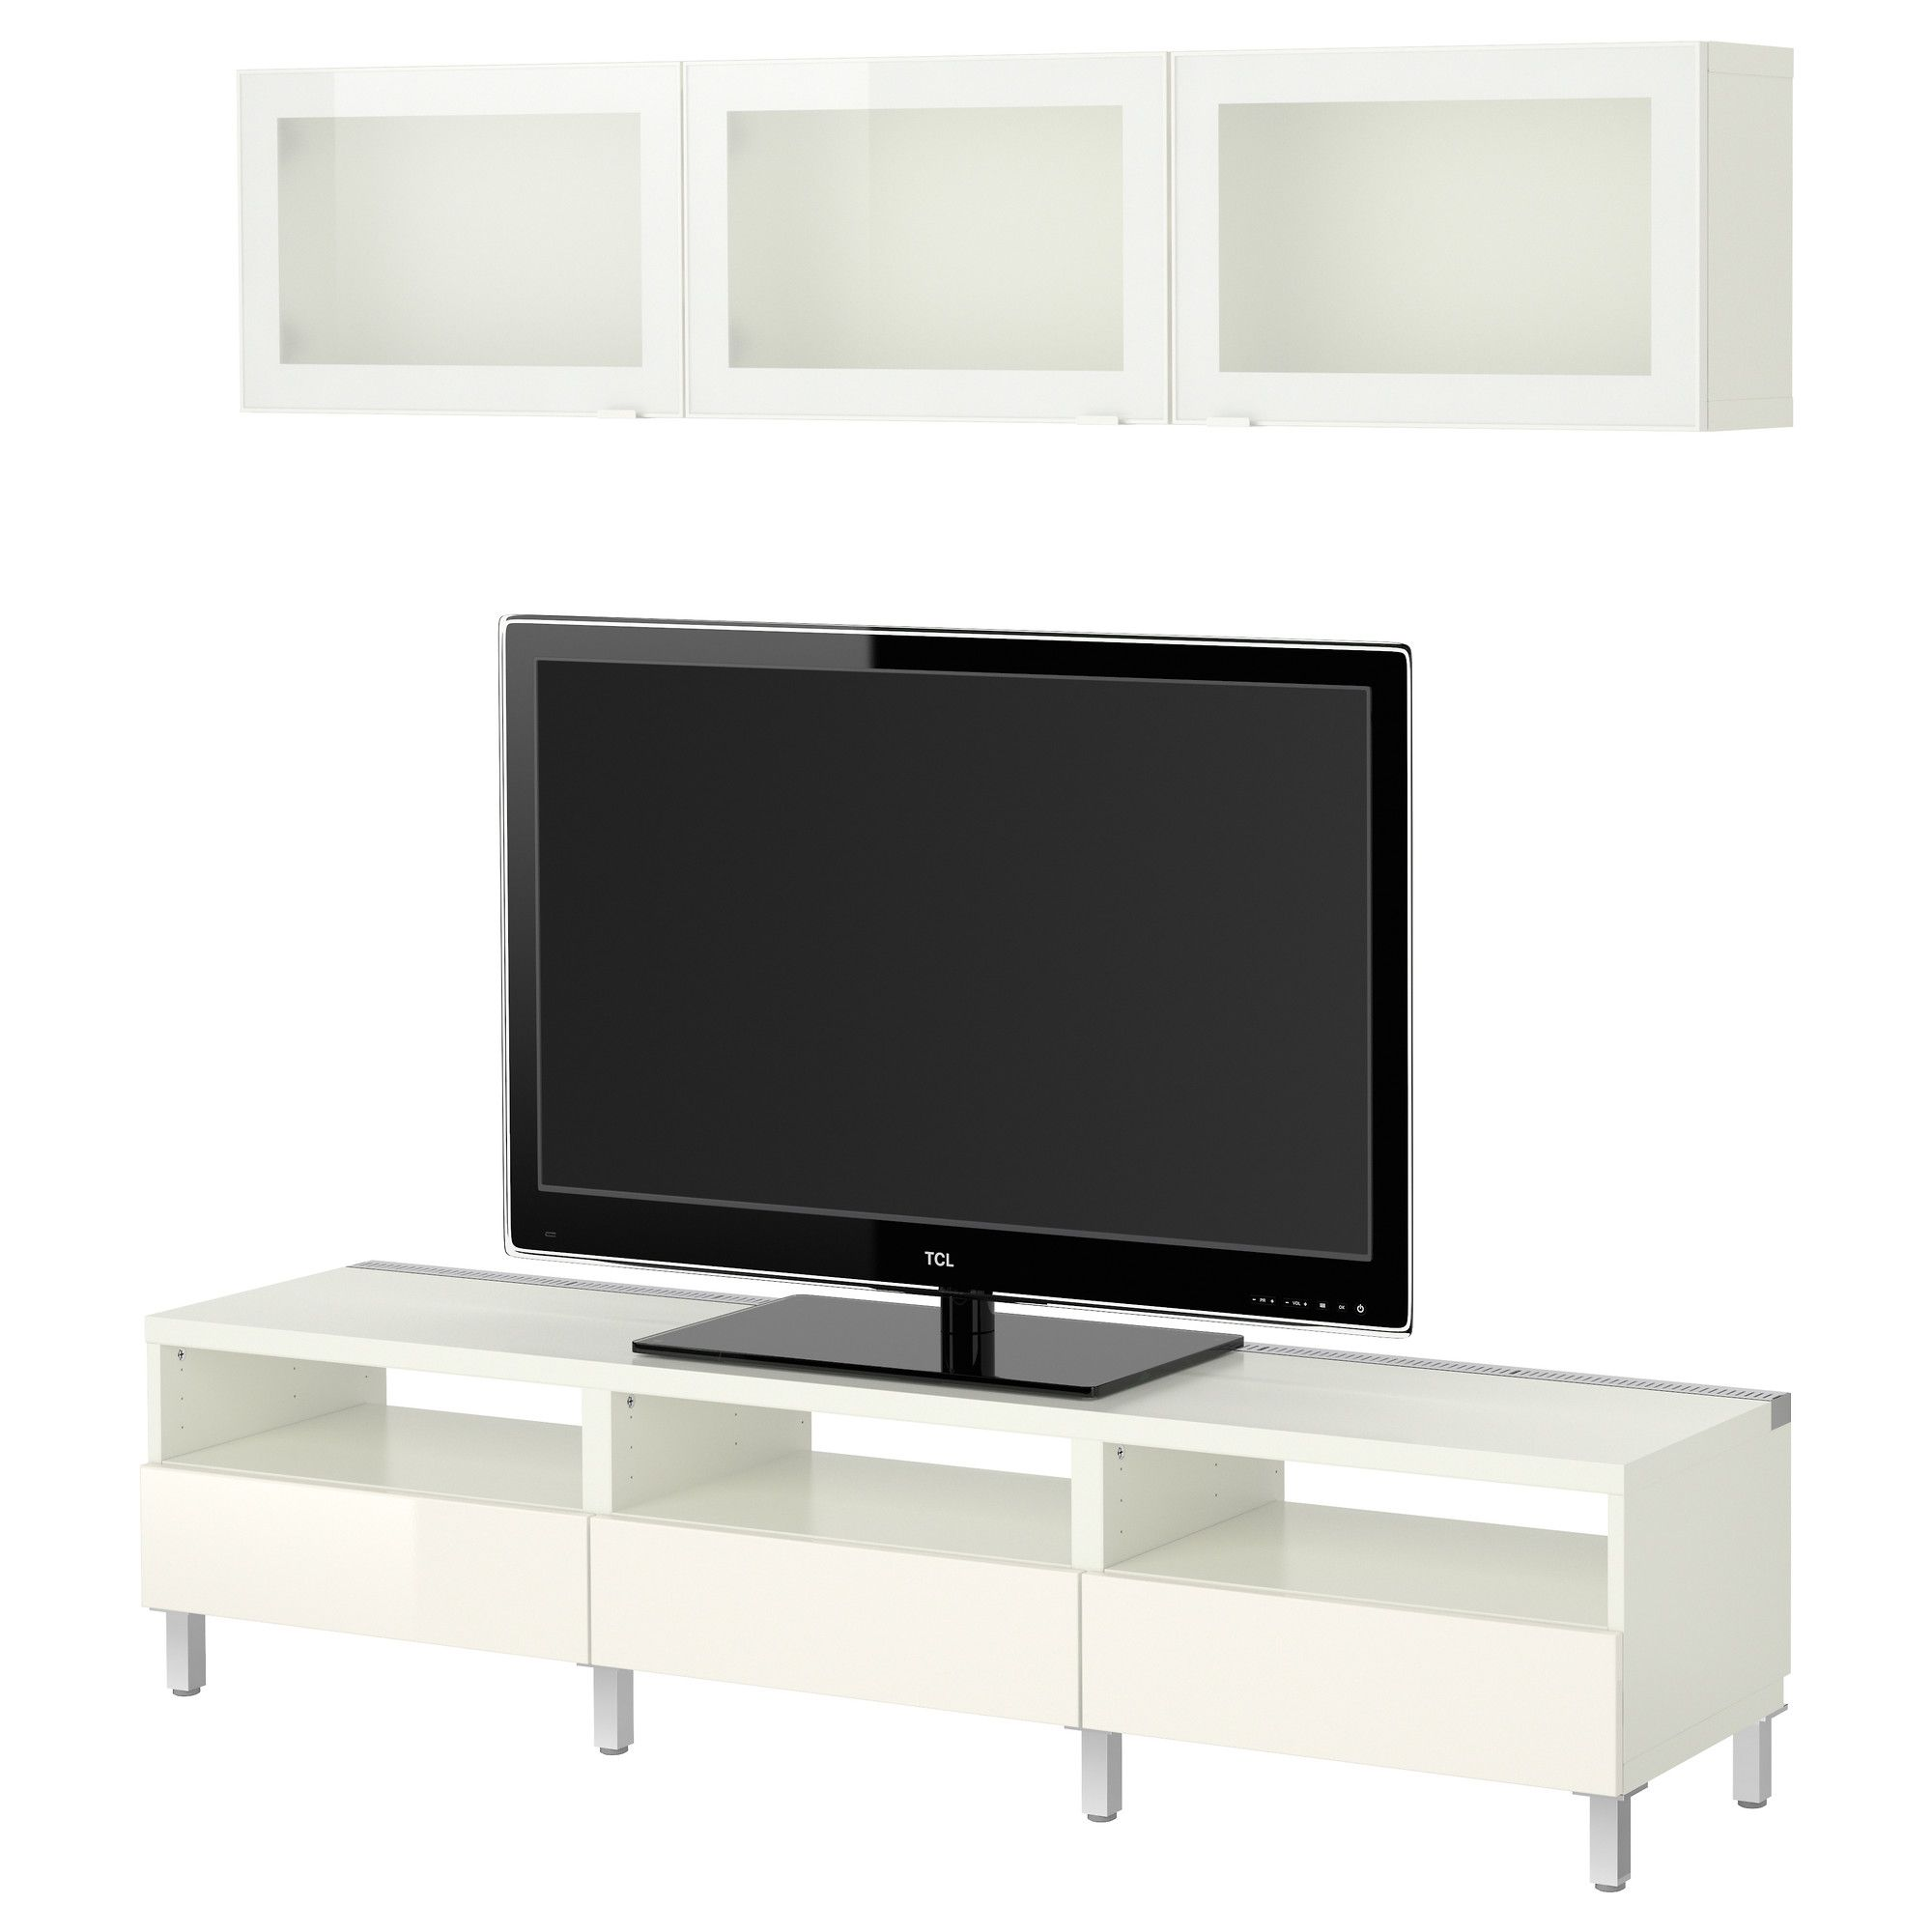 BEST… TV storage bination white Tofta high gloss white frosted